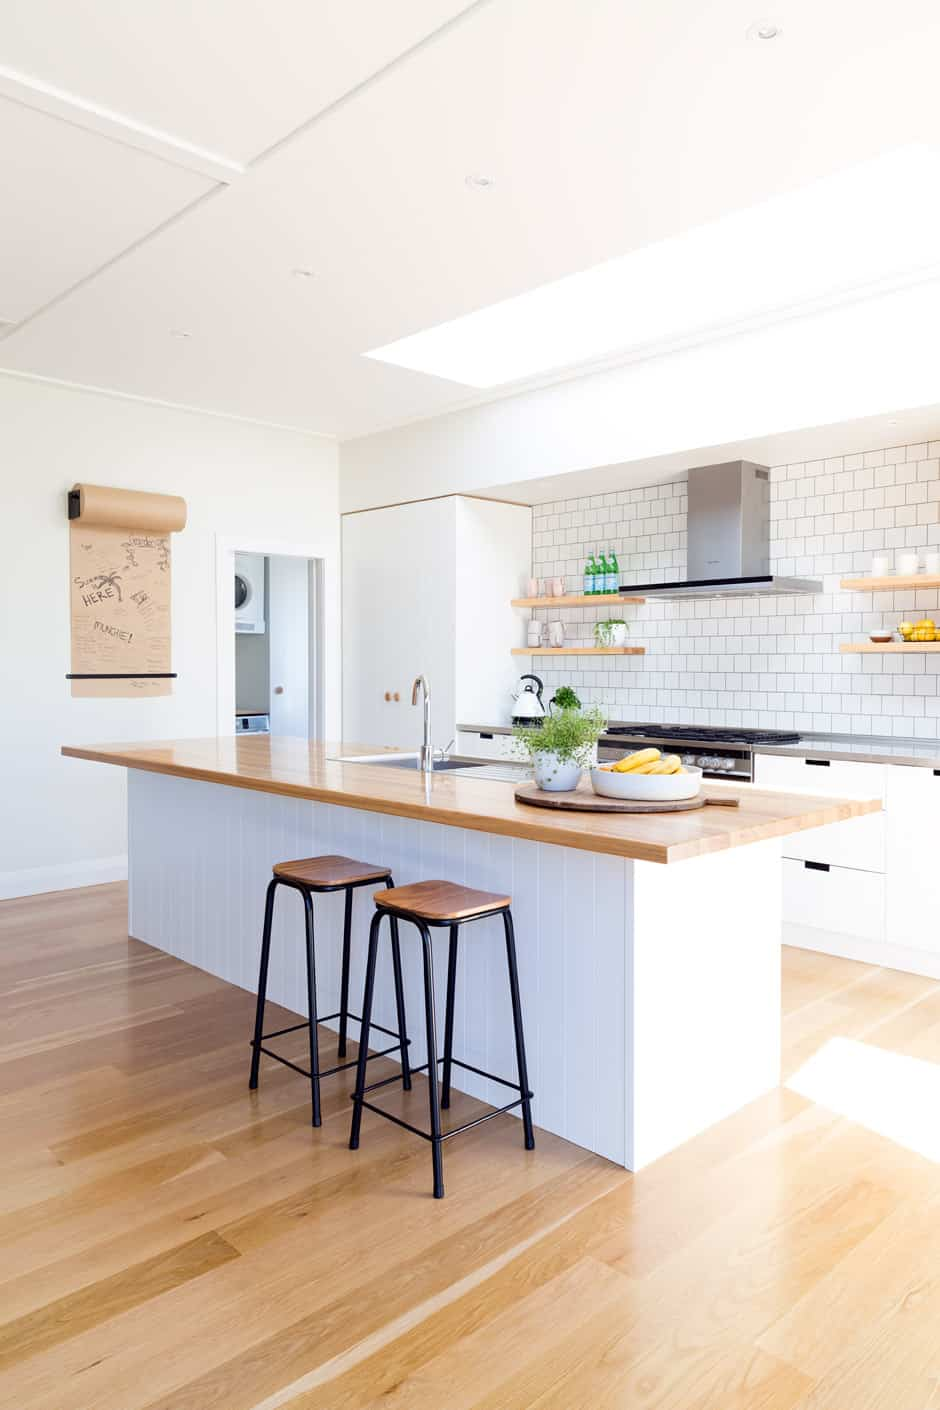 ptchev_renovation_homestyle_5